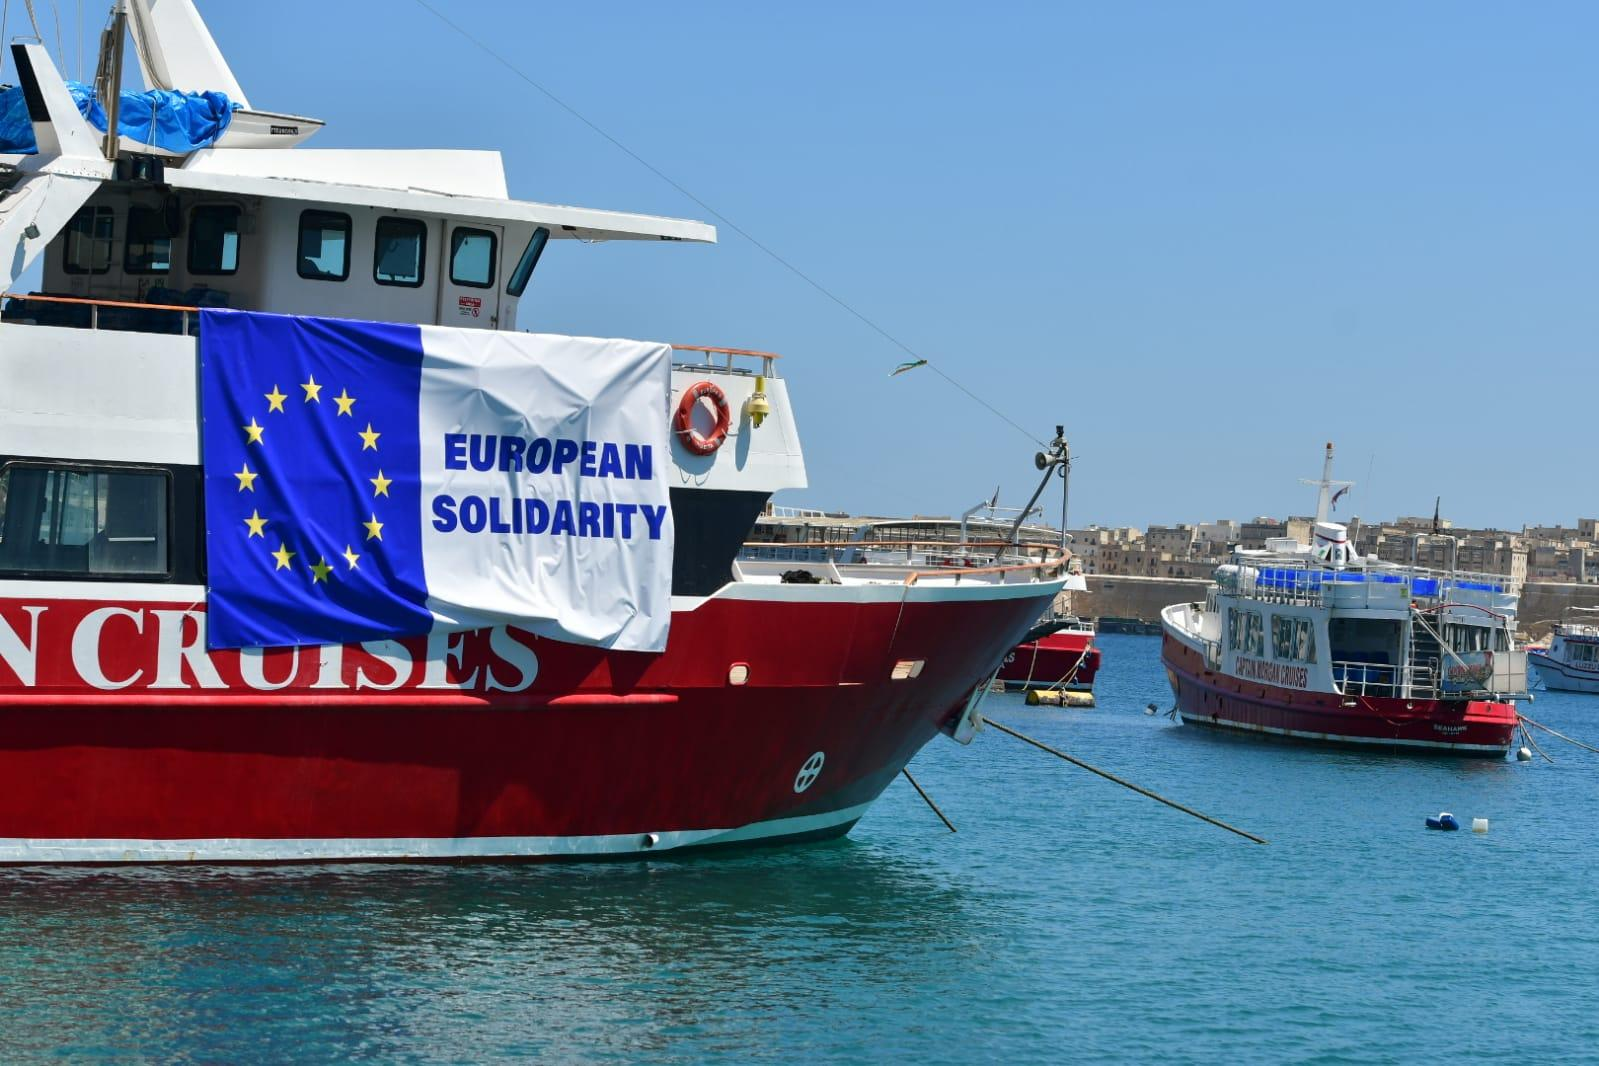 The Captain Morgan vessel bearing an EU flag and the phrase 'European Solidarity'. Photo: Jonathan Borg